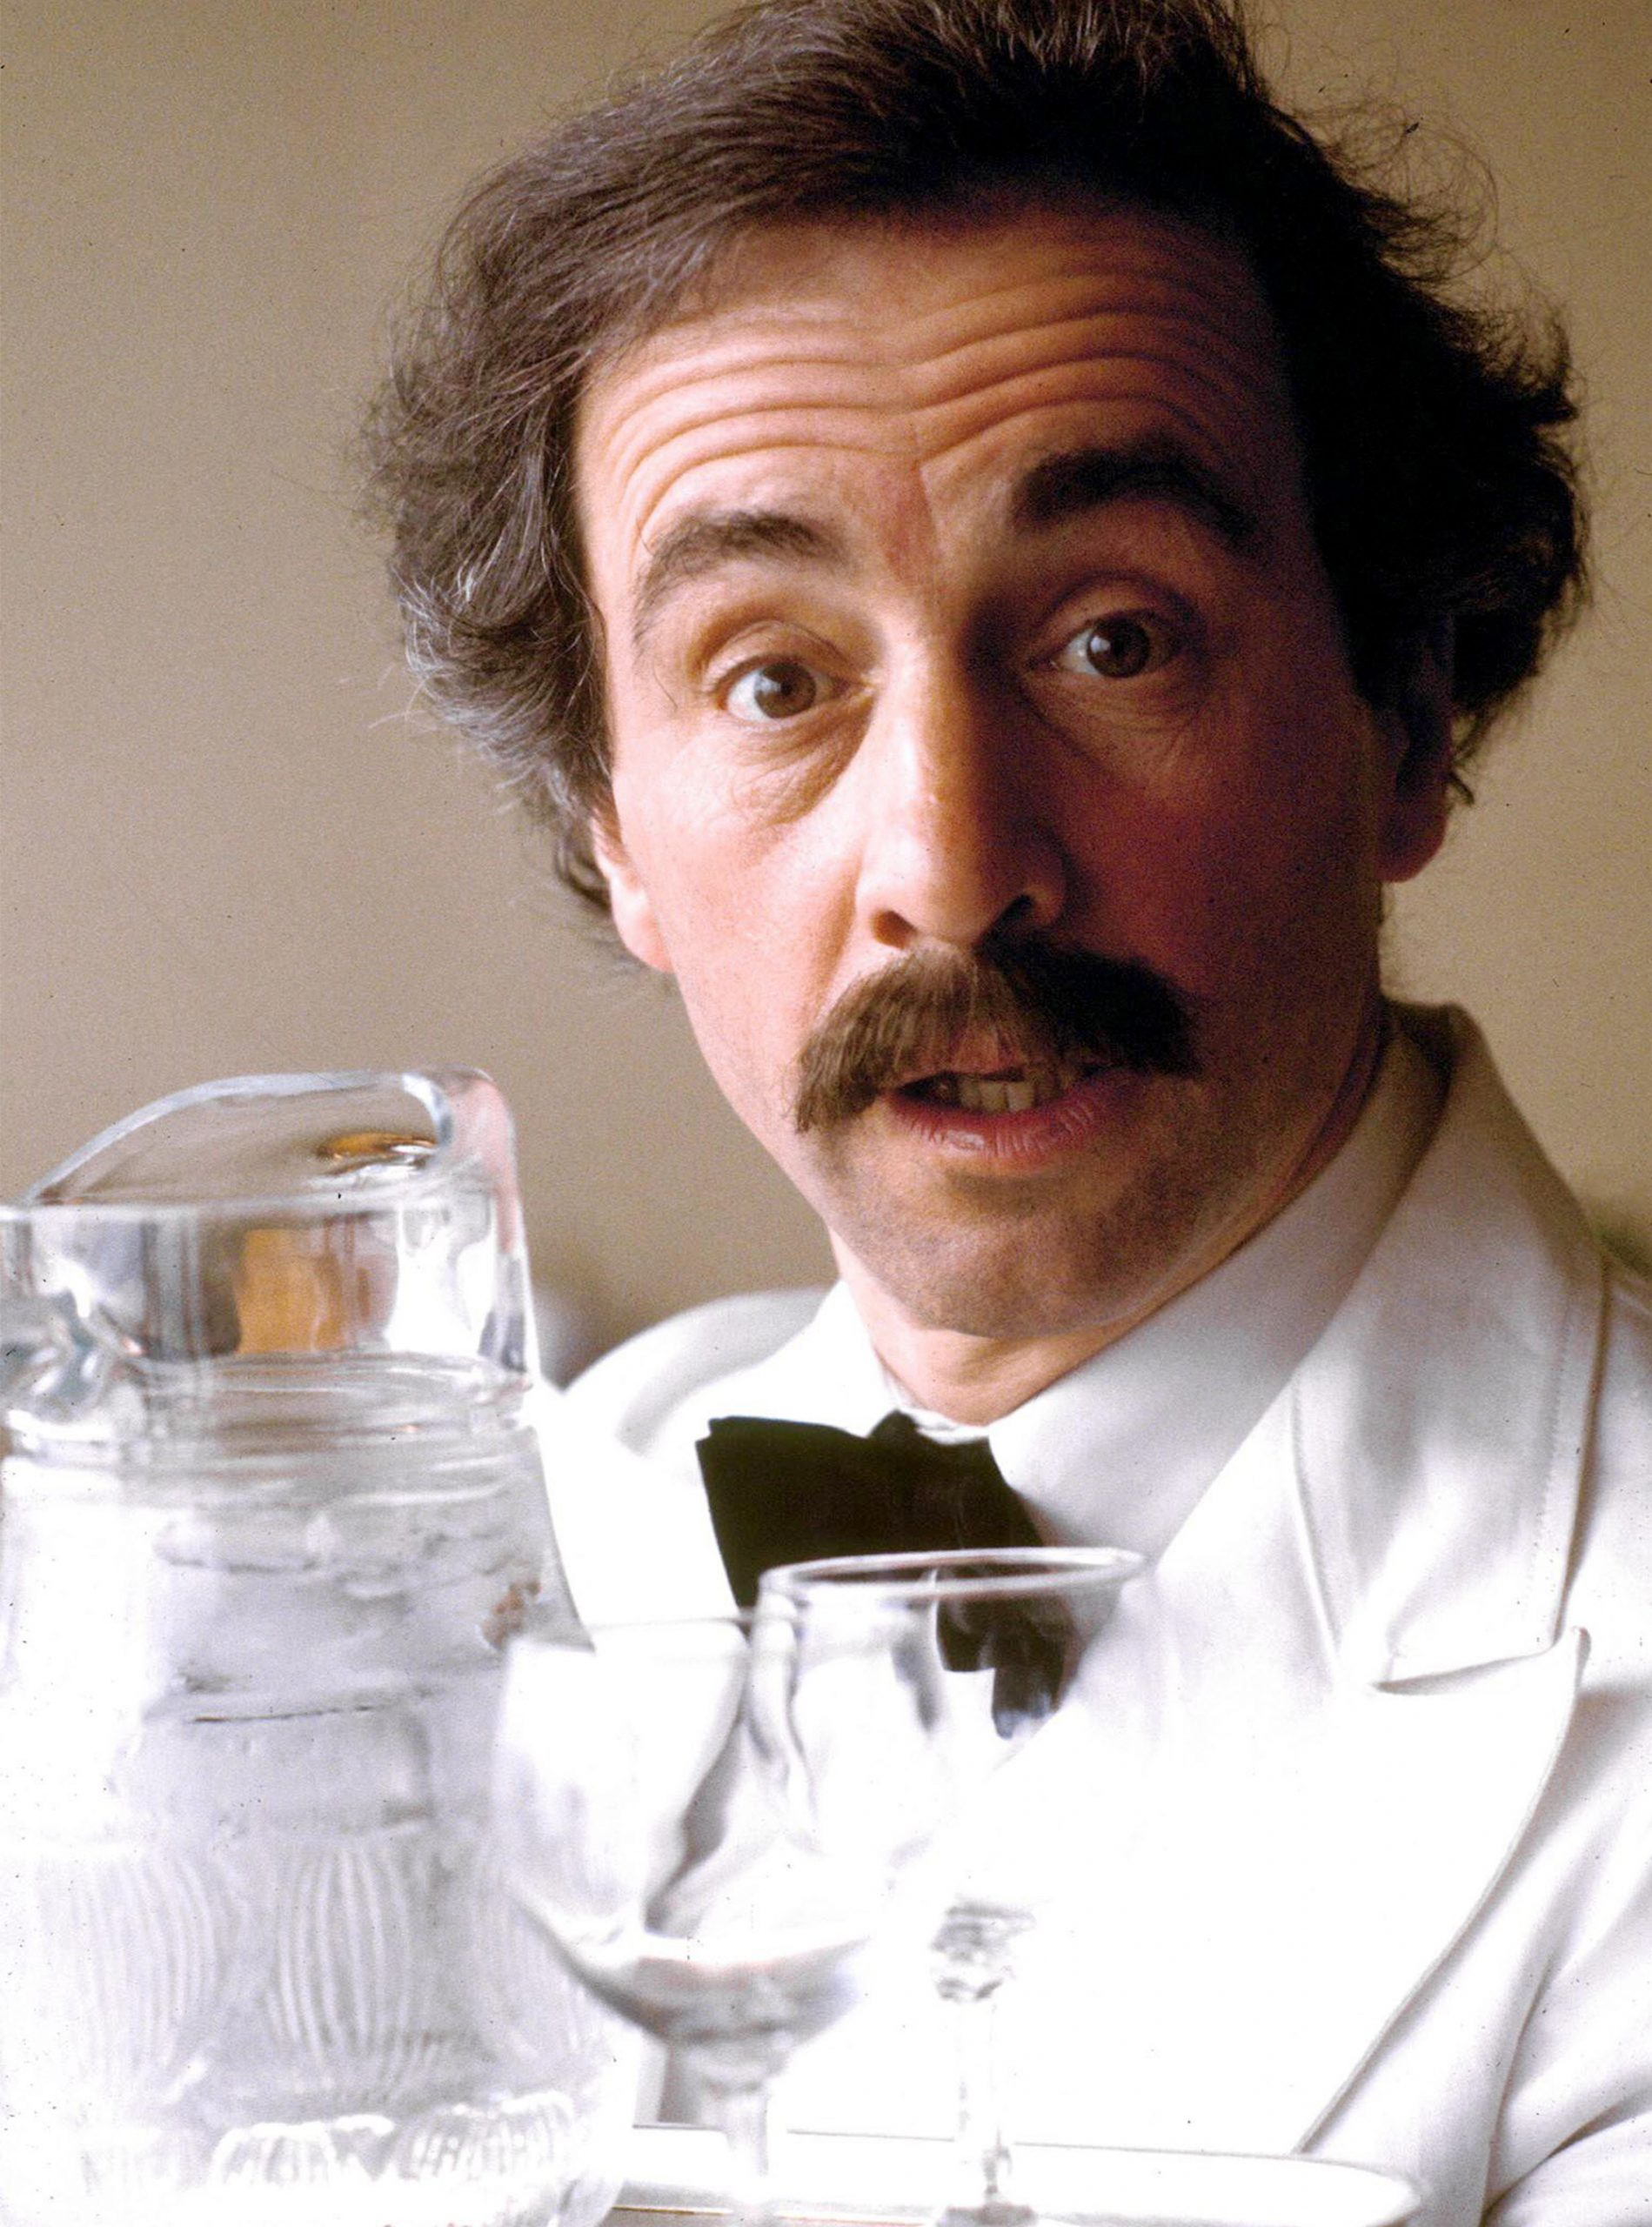 andrewsachs